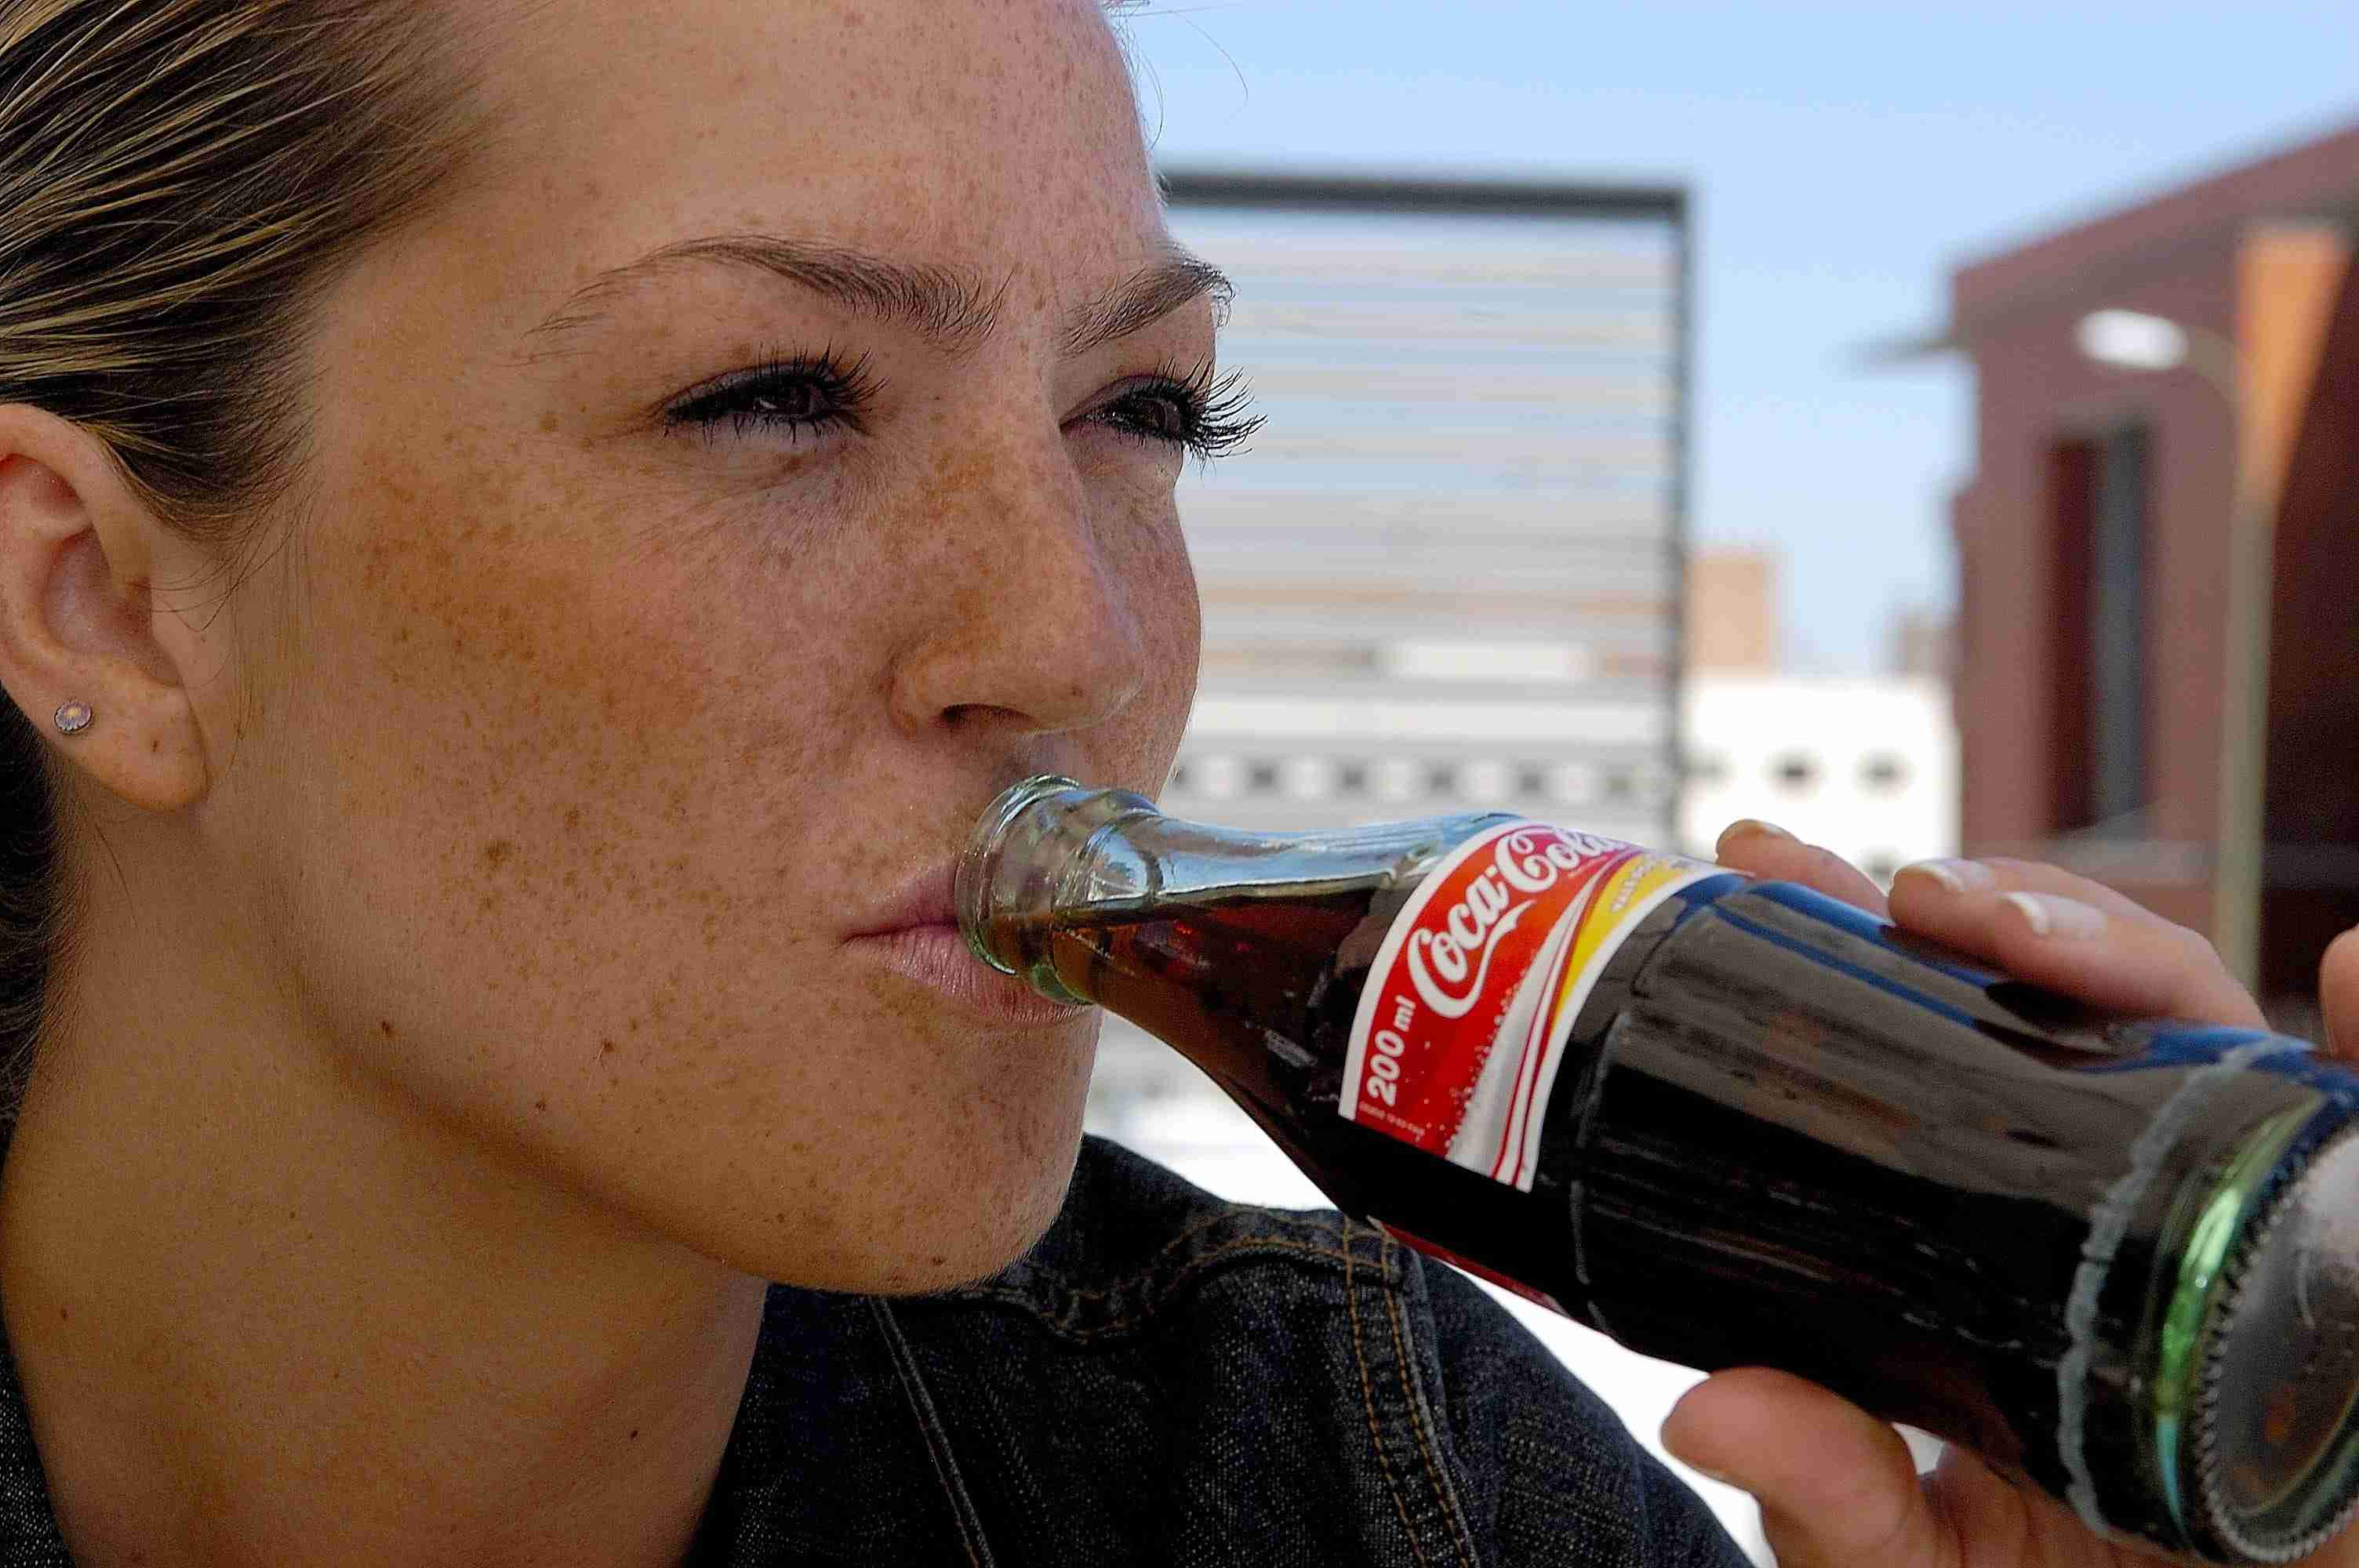 A girl drinking a coke. (Photo by Fernando Camino/Cover/Getty Images)